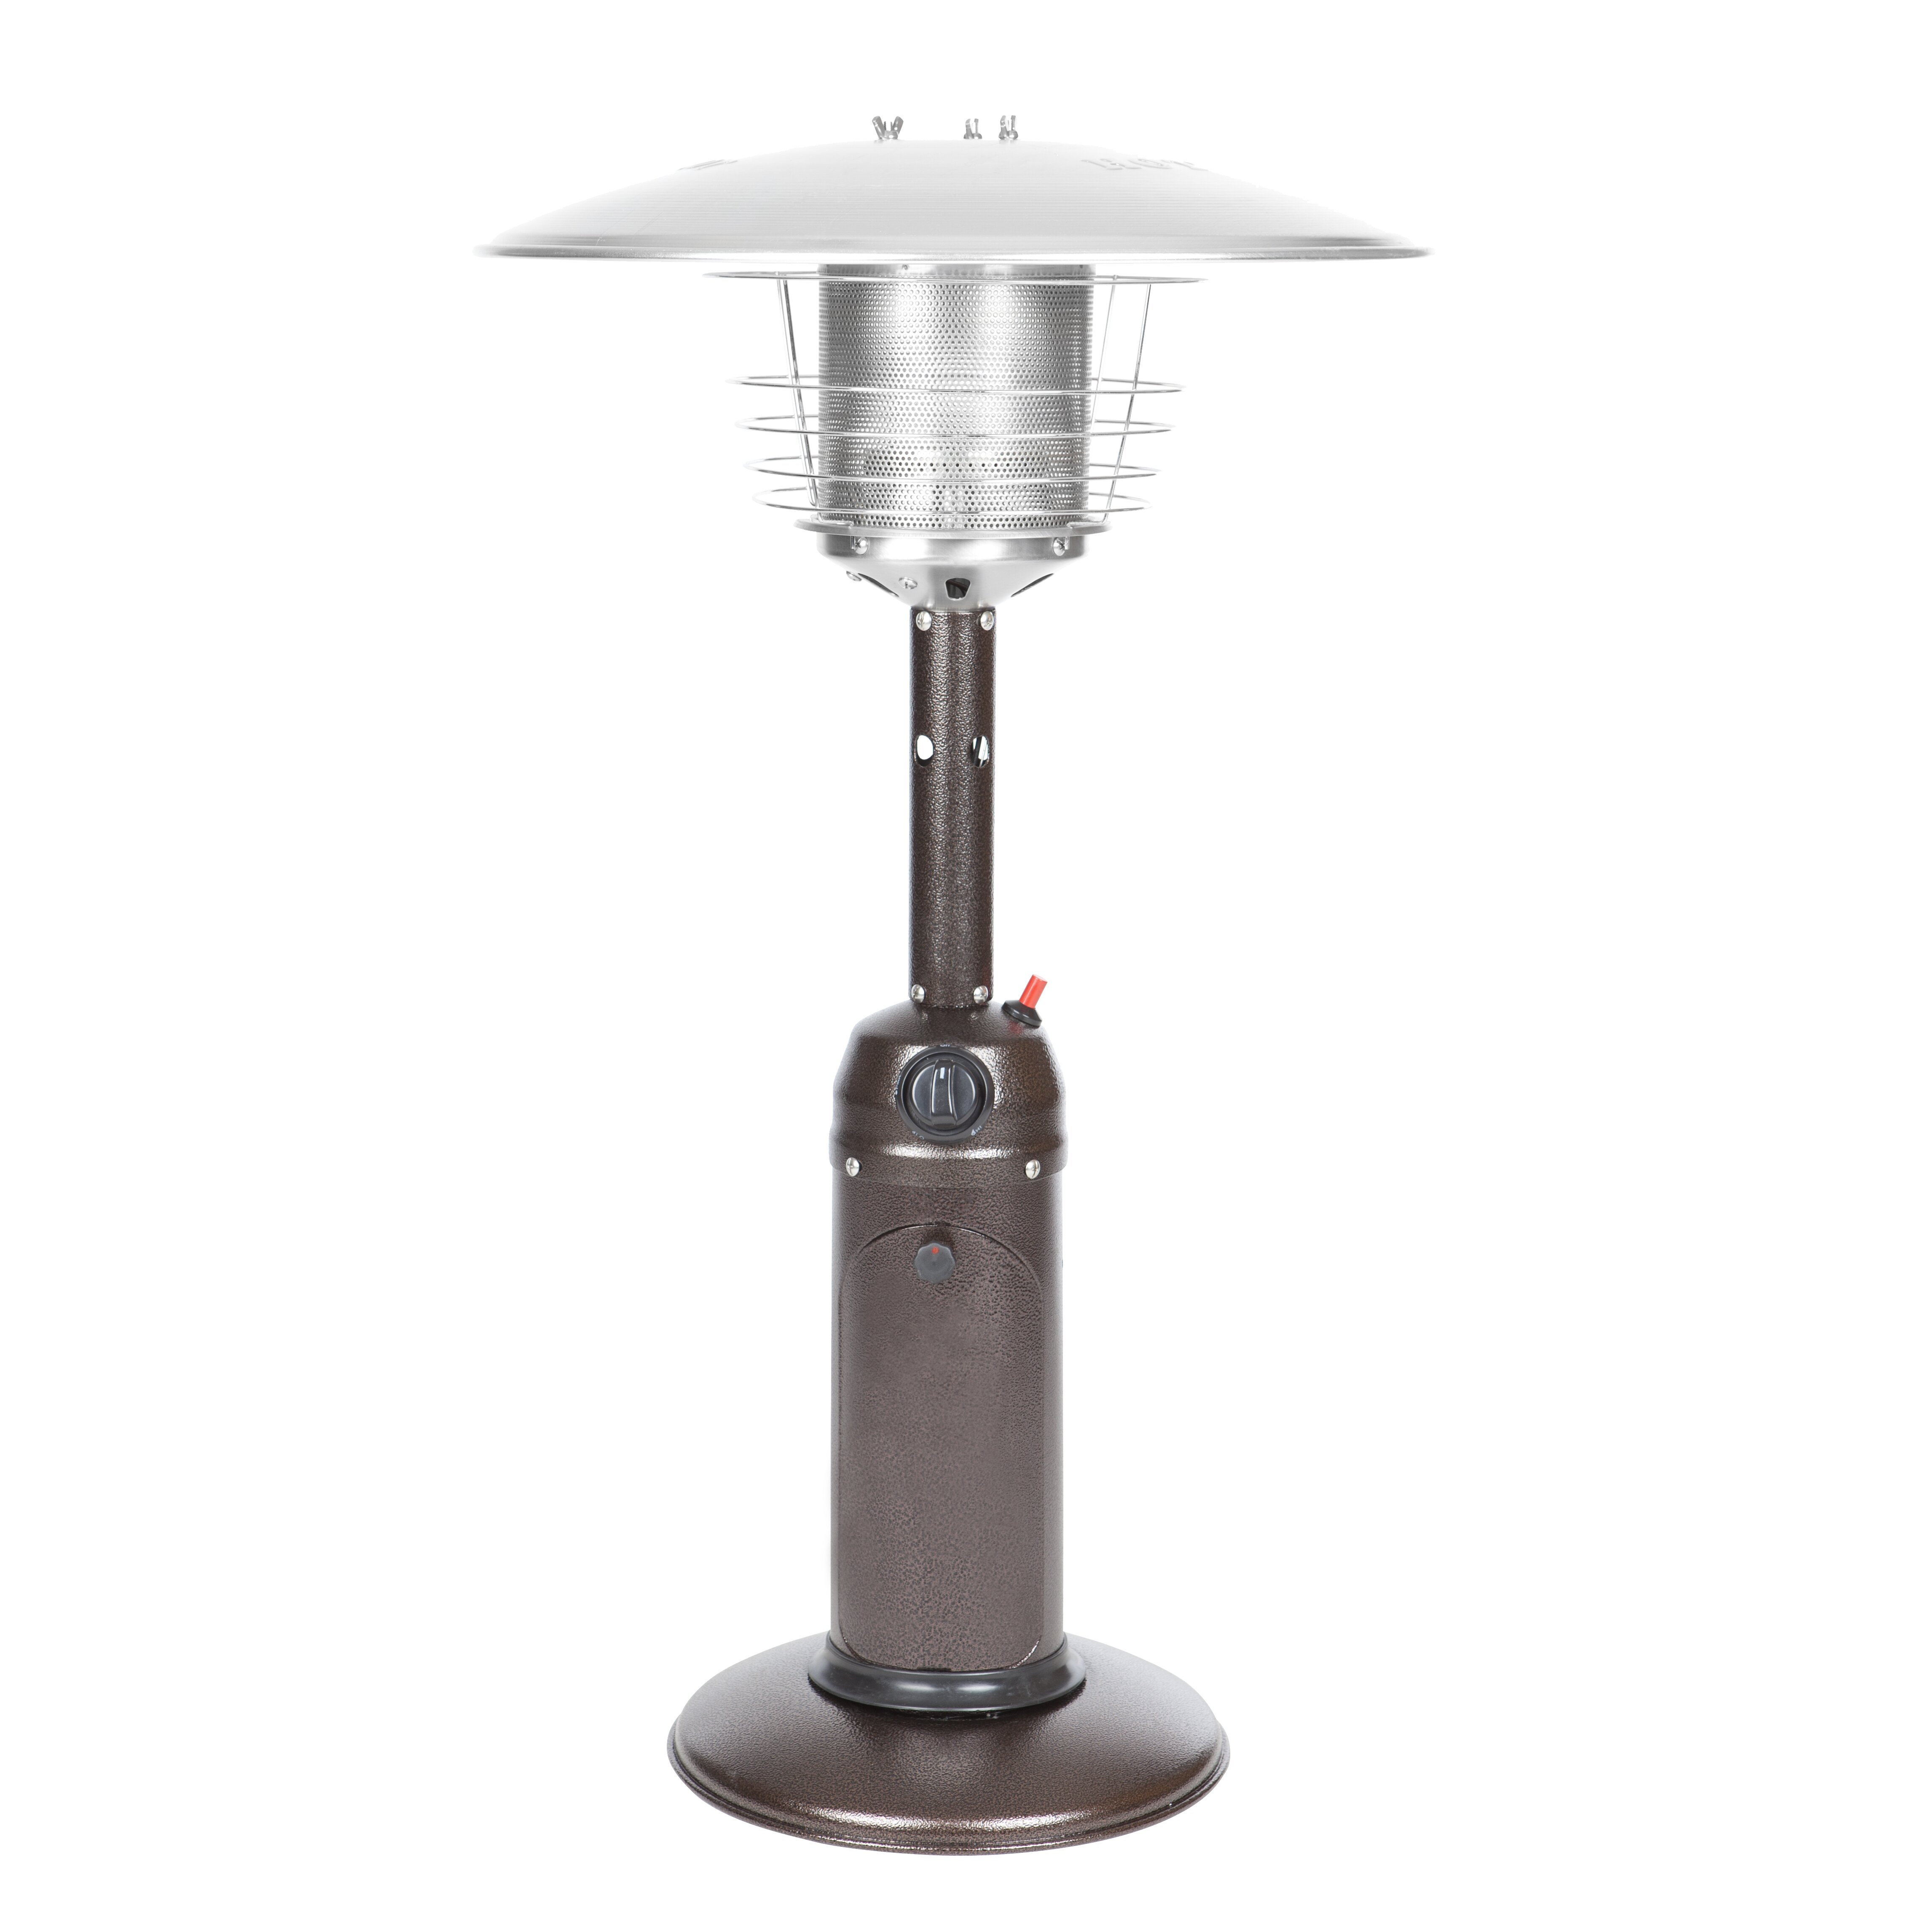 patio napoleon steel heaters rent stainless new for tabletop luxury of reviews image heater